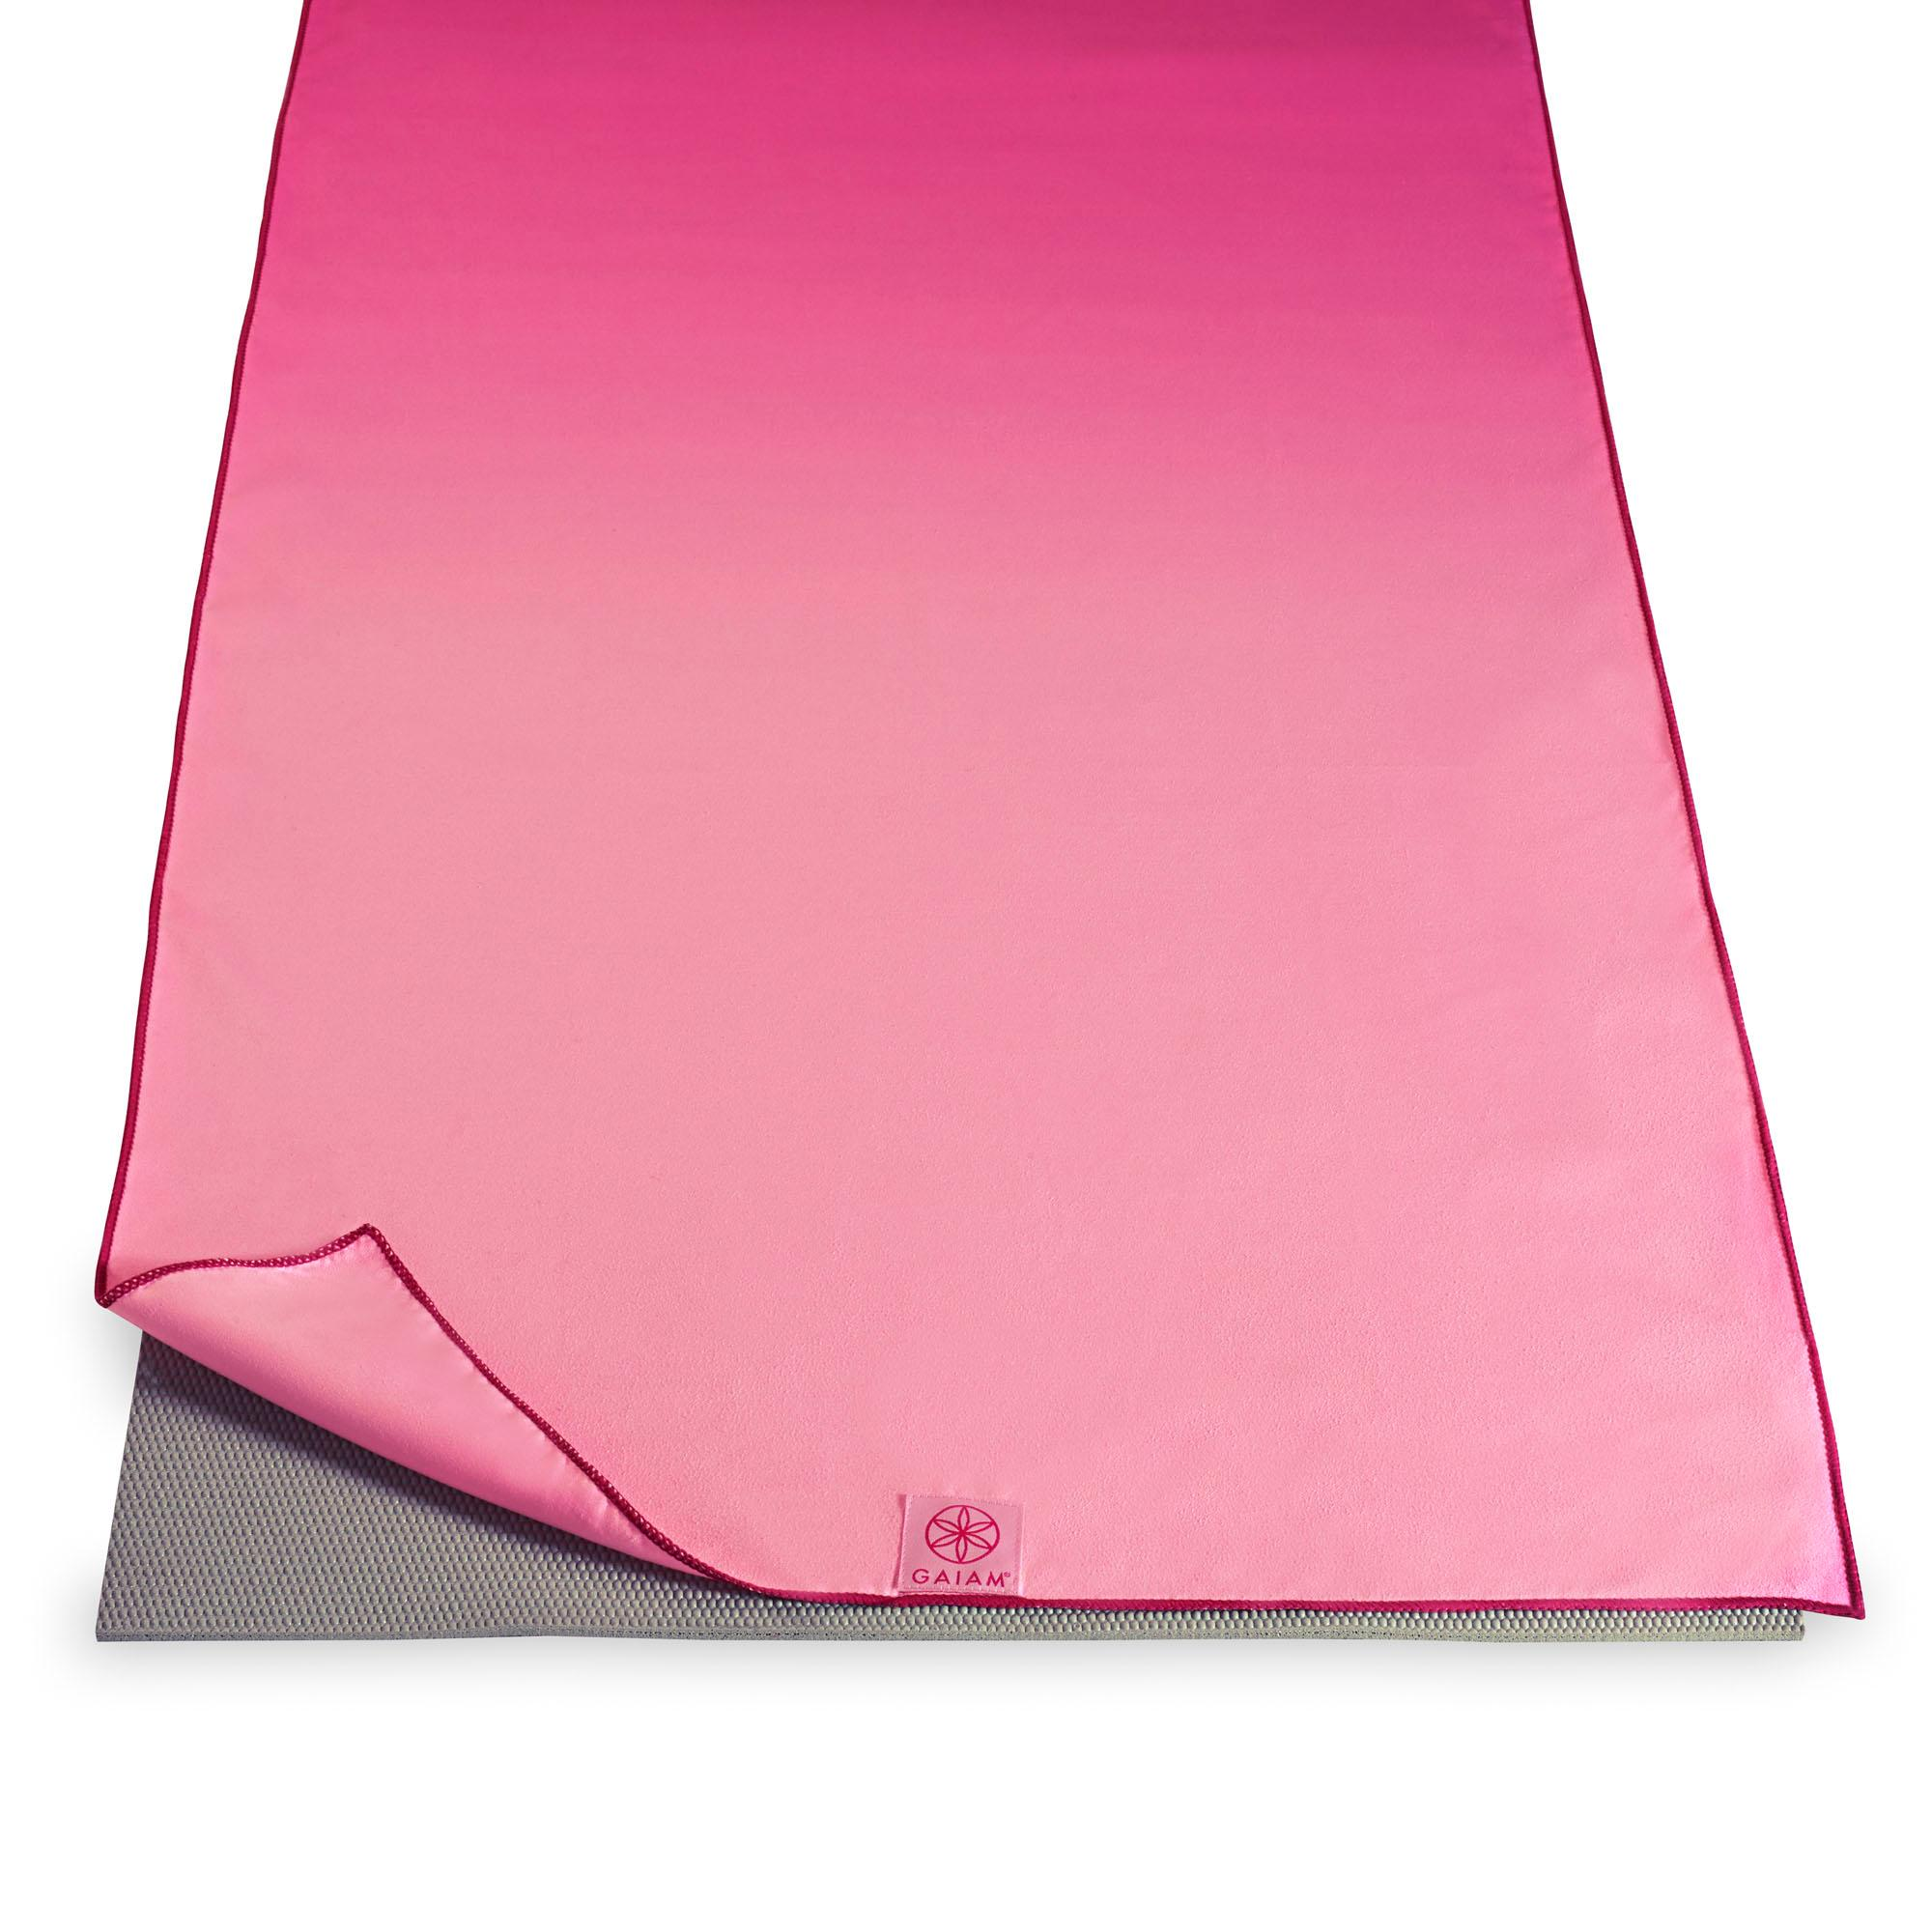 Amazon.com : Gaiam Hot Yoga Mat Towel, Pink Fandango